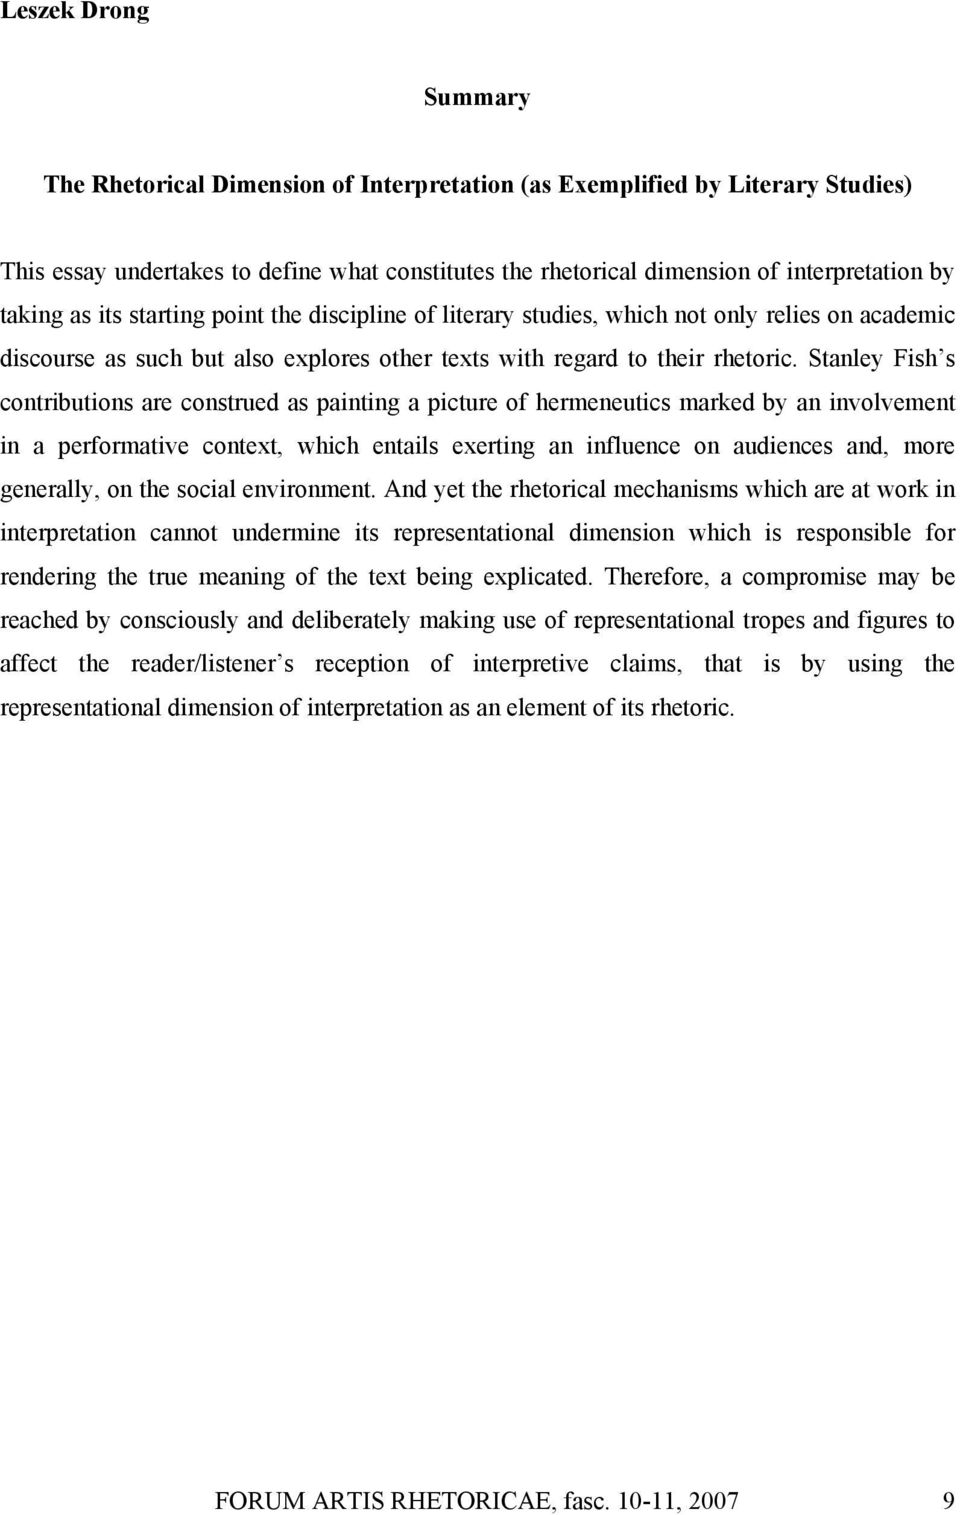 stanley fish reader response theory pdf